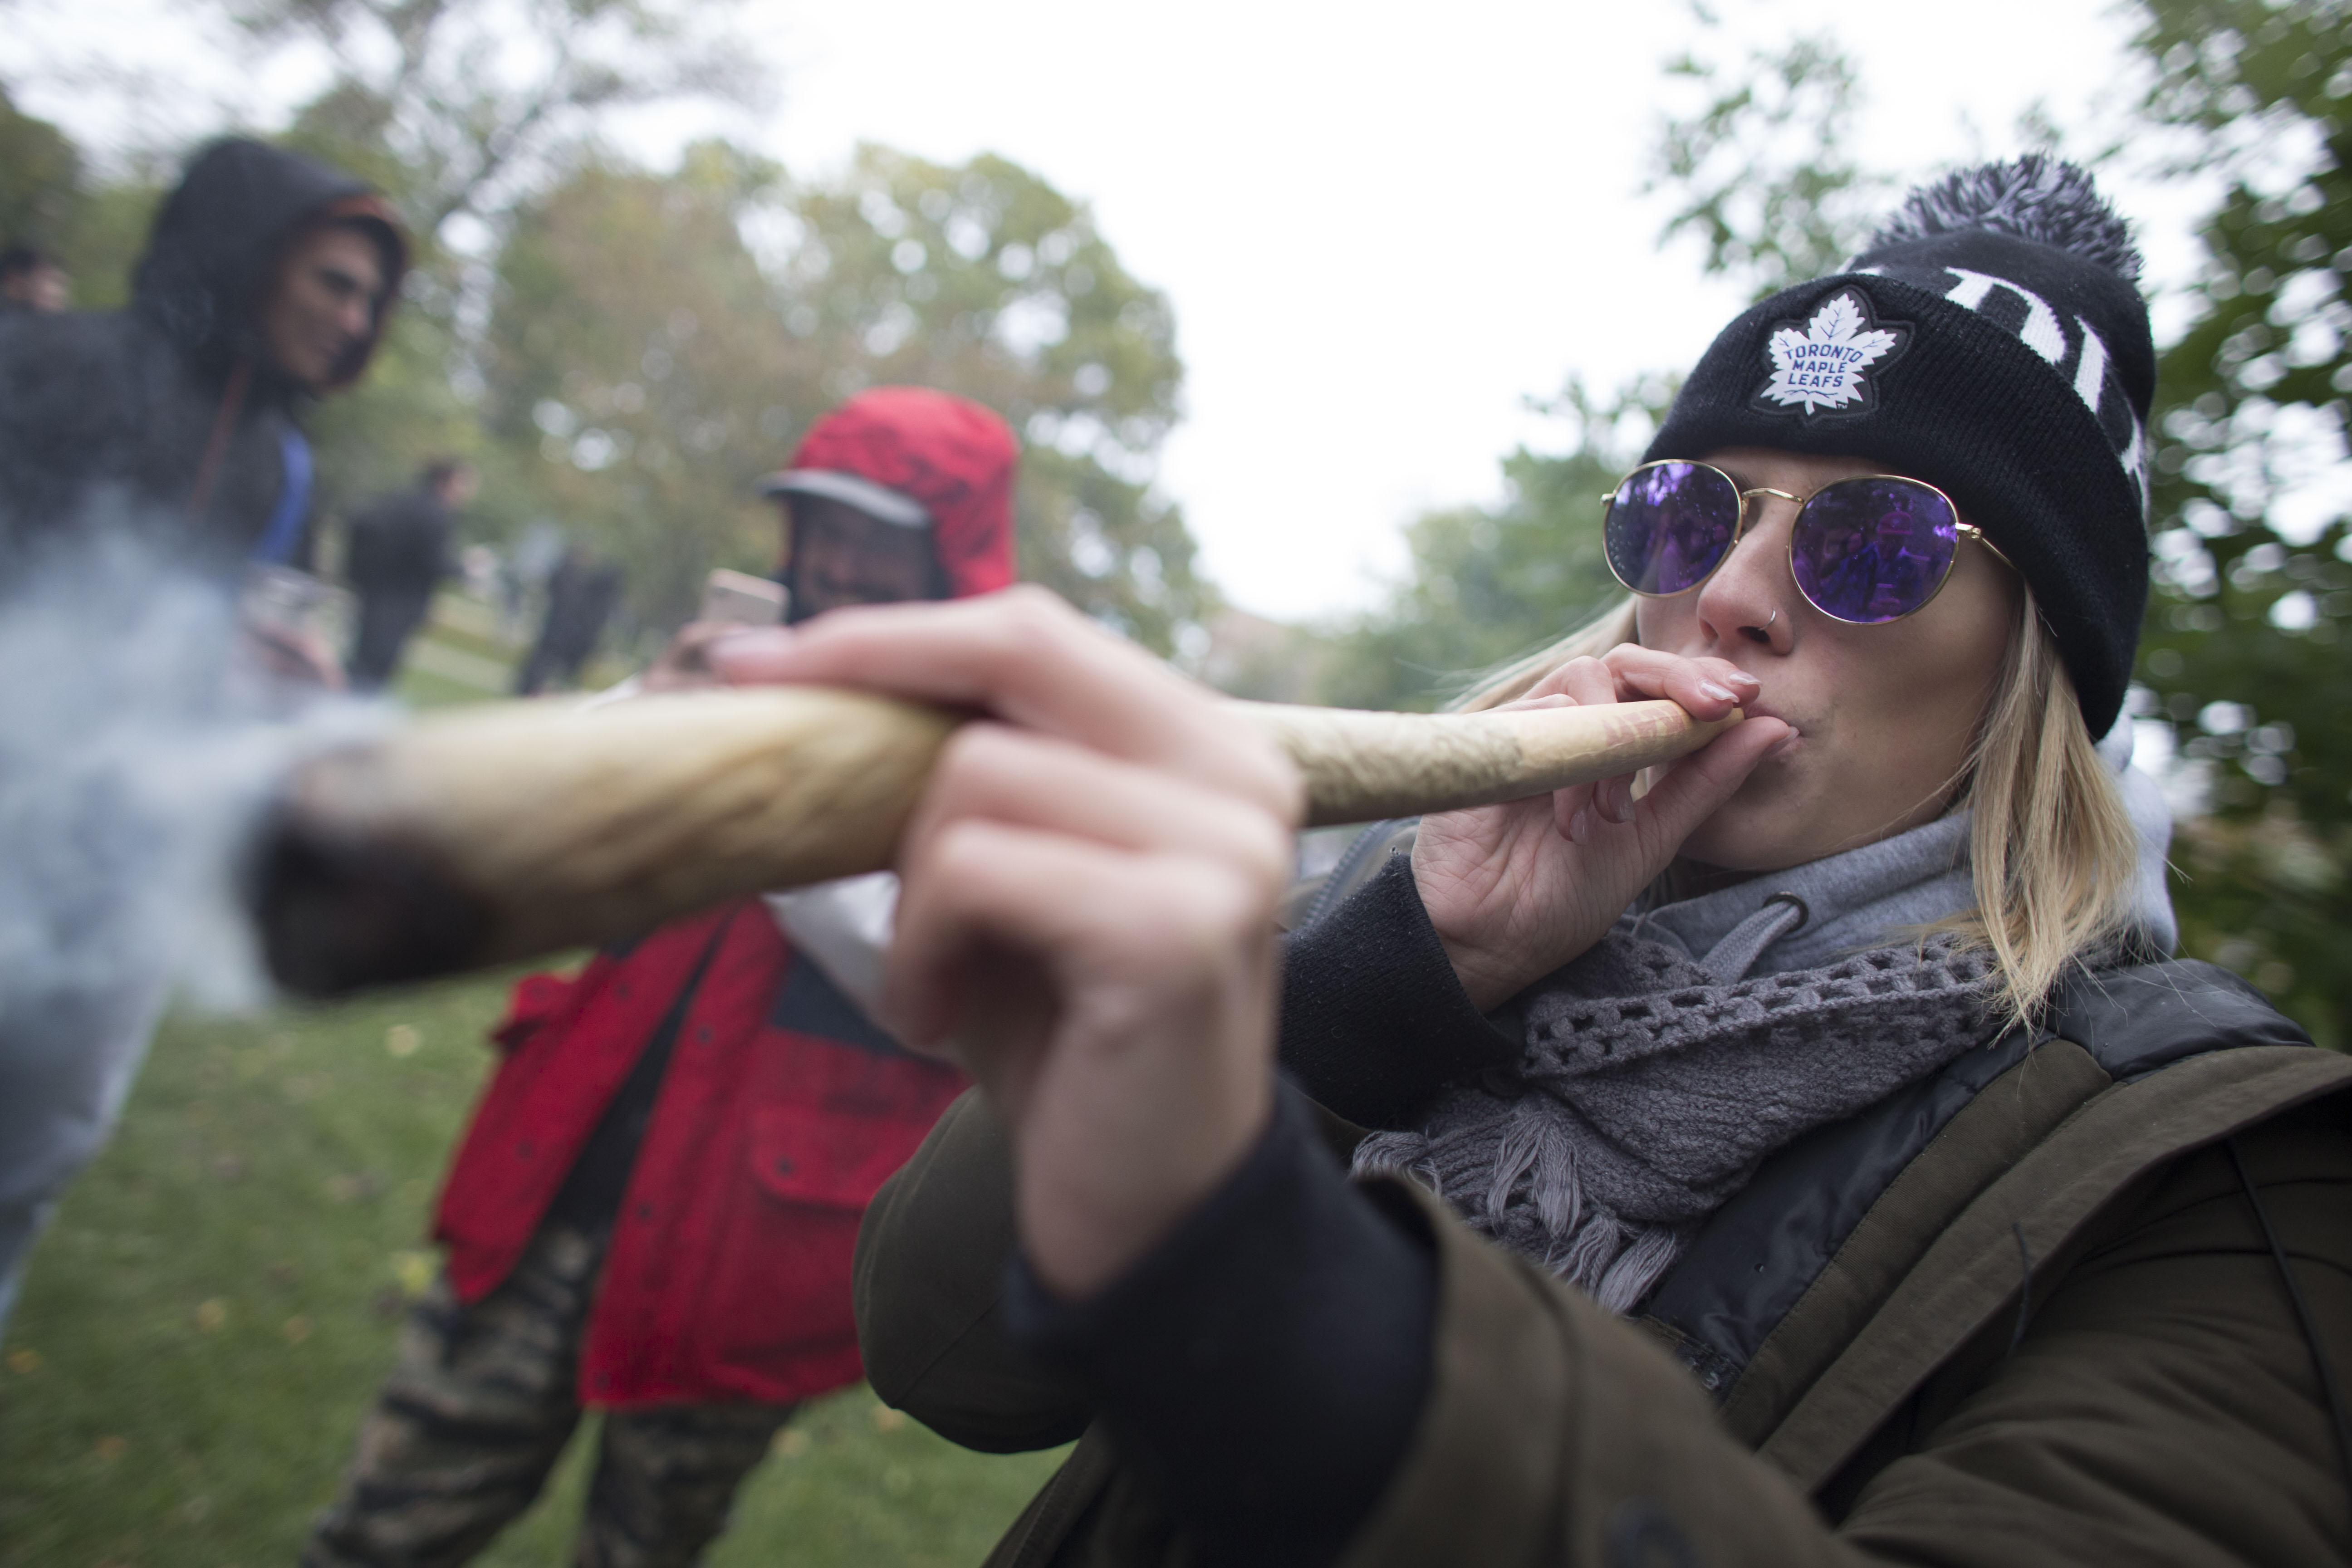 A woman smokes a marijuana cigarette during a legalization party at Trinity Bellwoods Park in Toronto, Ontario. (GEOFF ROBINS/AFP via Getty Images)